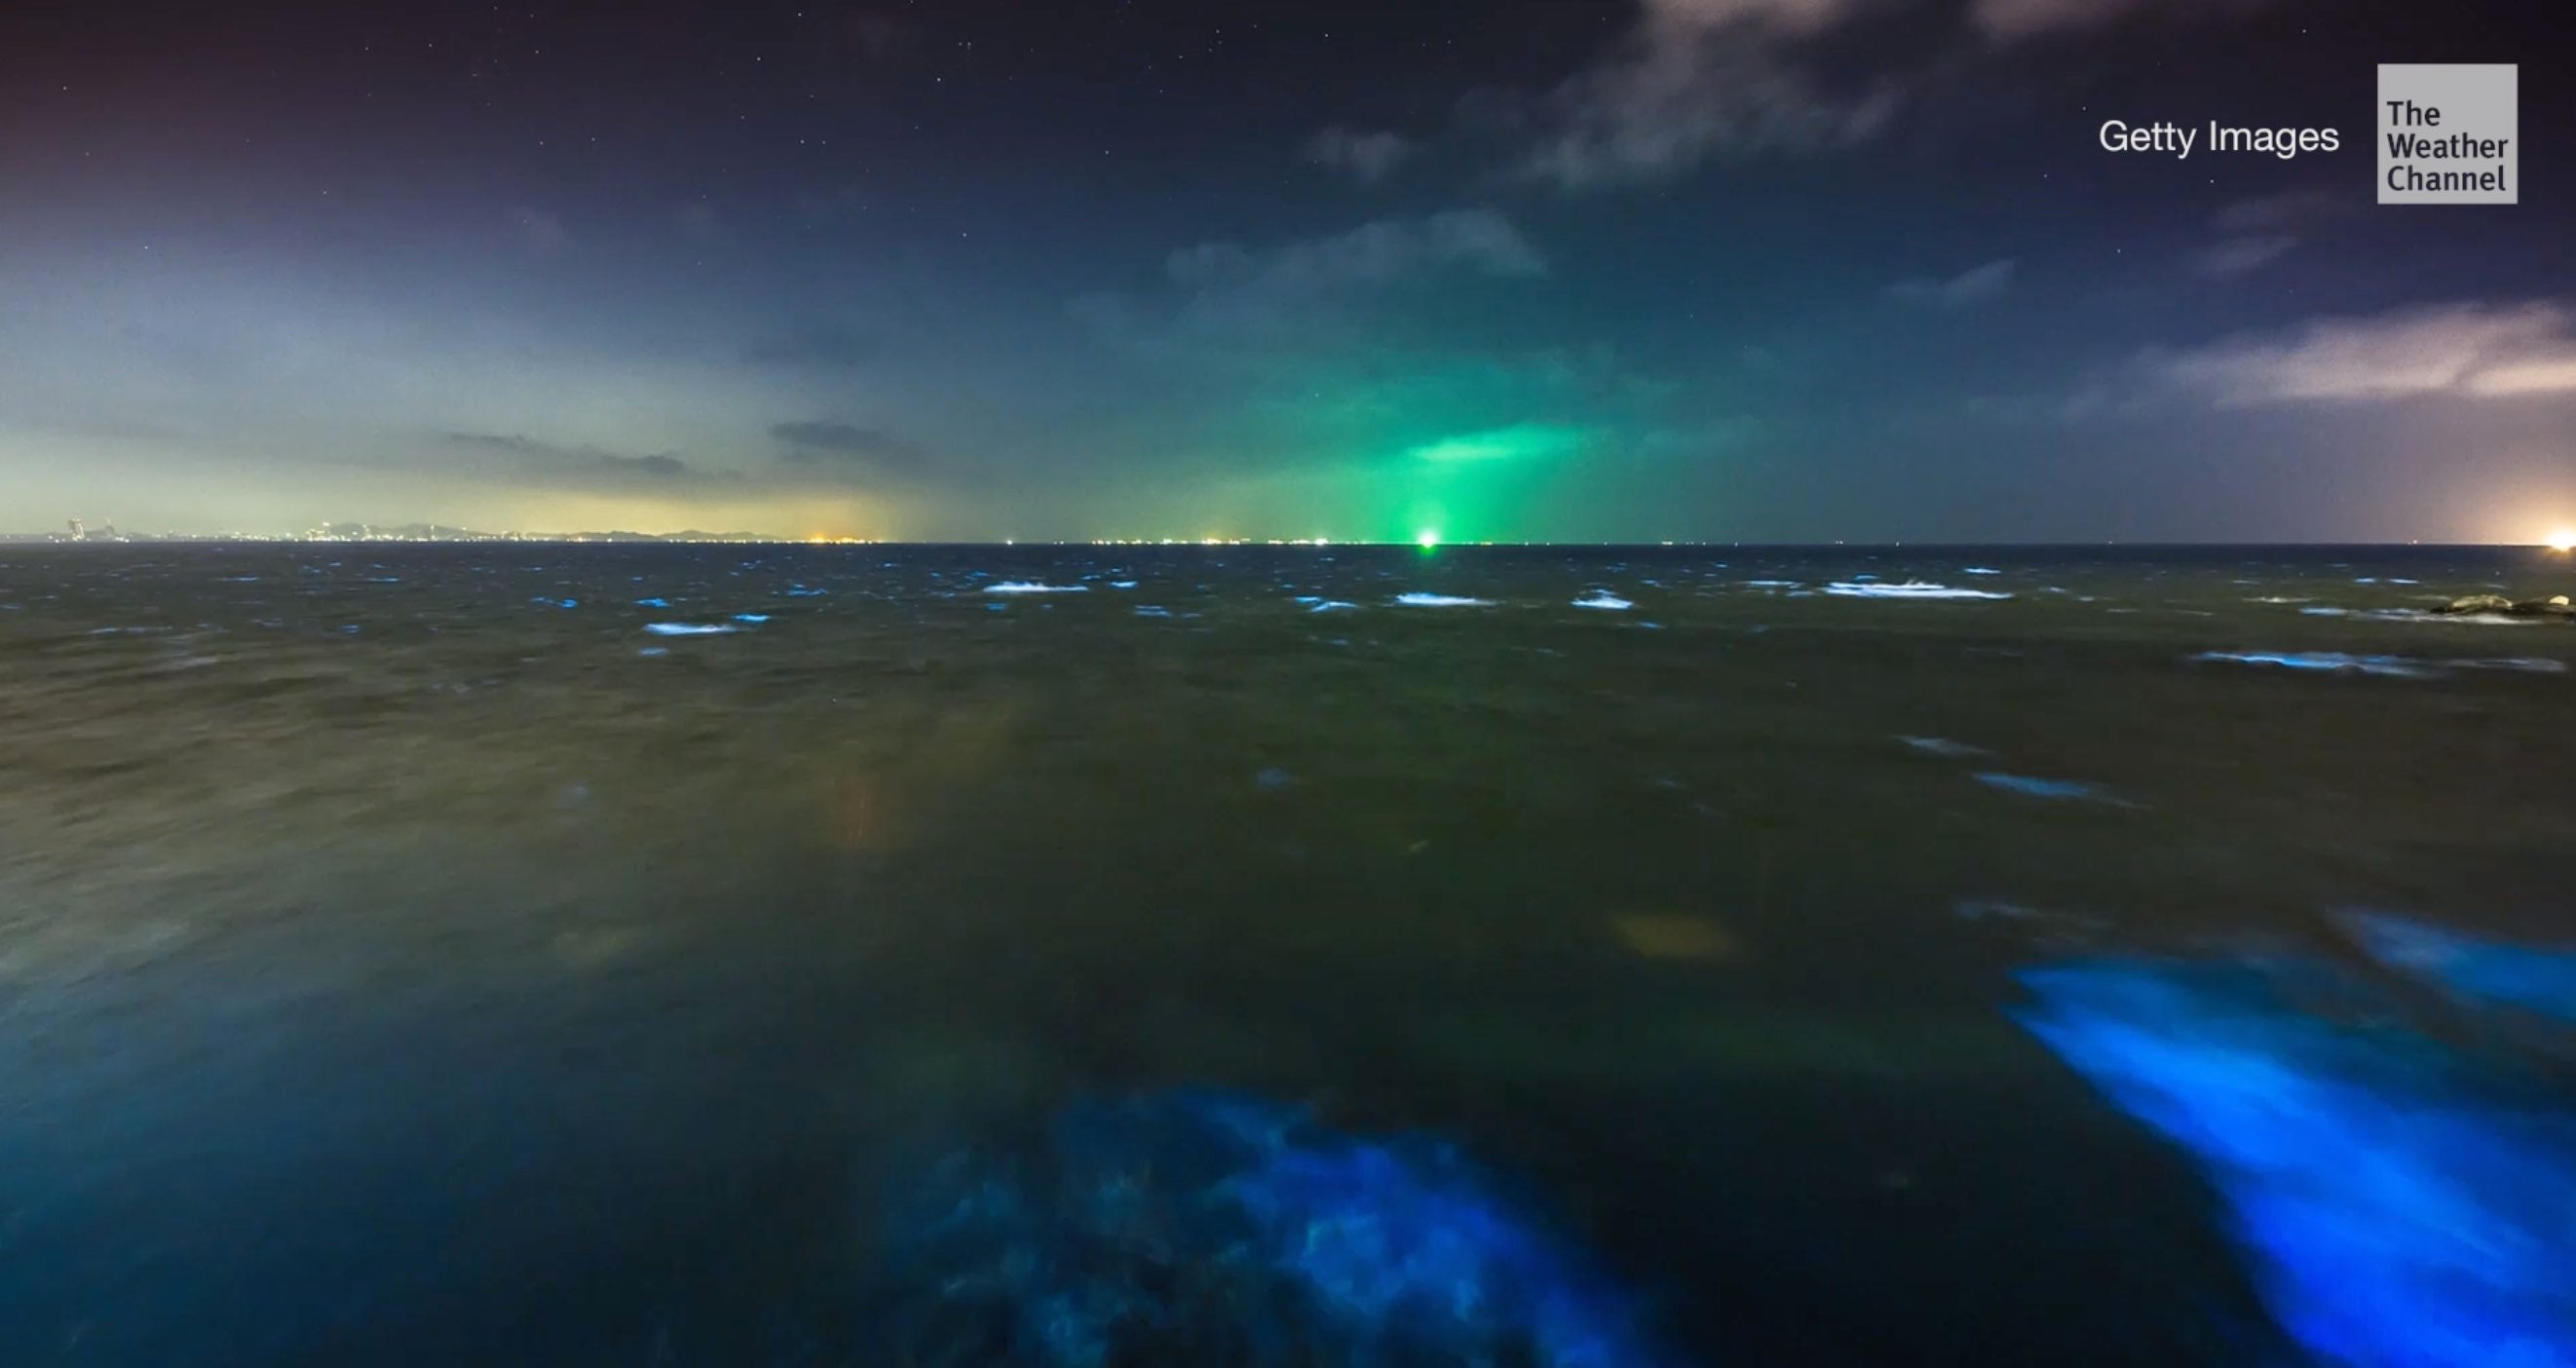 Glowing waves at Jervis Bay in Australia, about 120 miles south of Sydney, make a dazzling sight. The stunning blue bioluminescent hue is produced by an algae when it's disturbed.